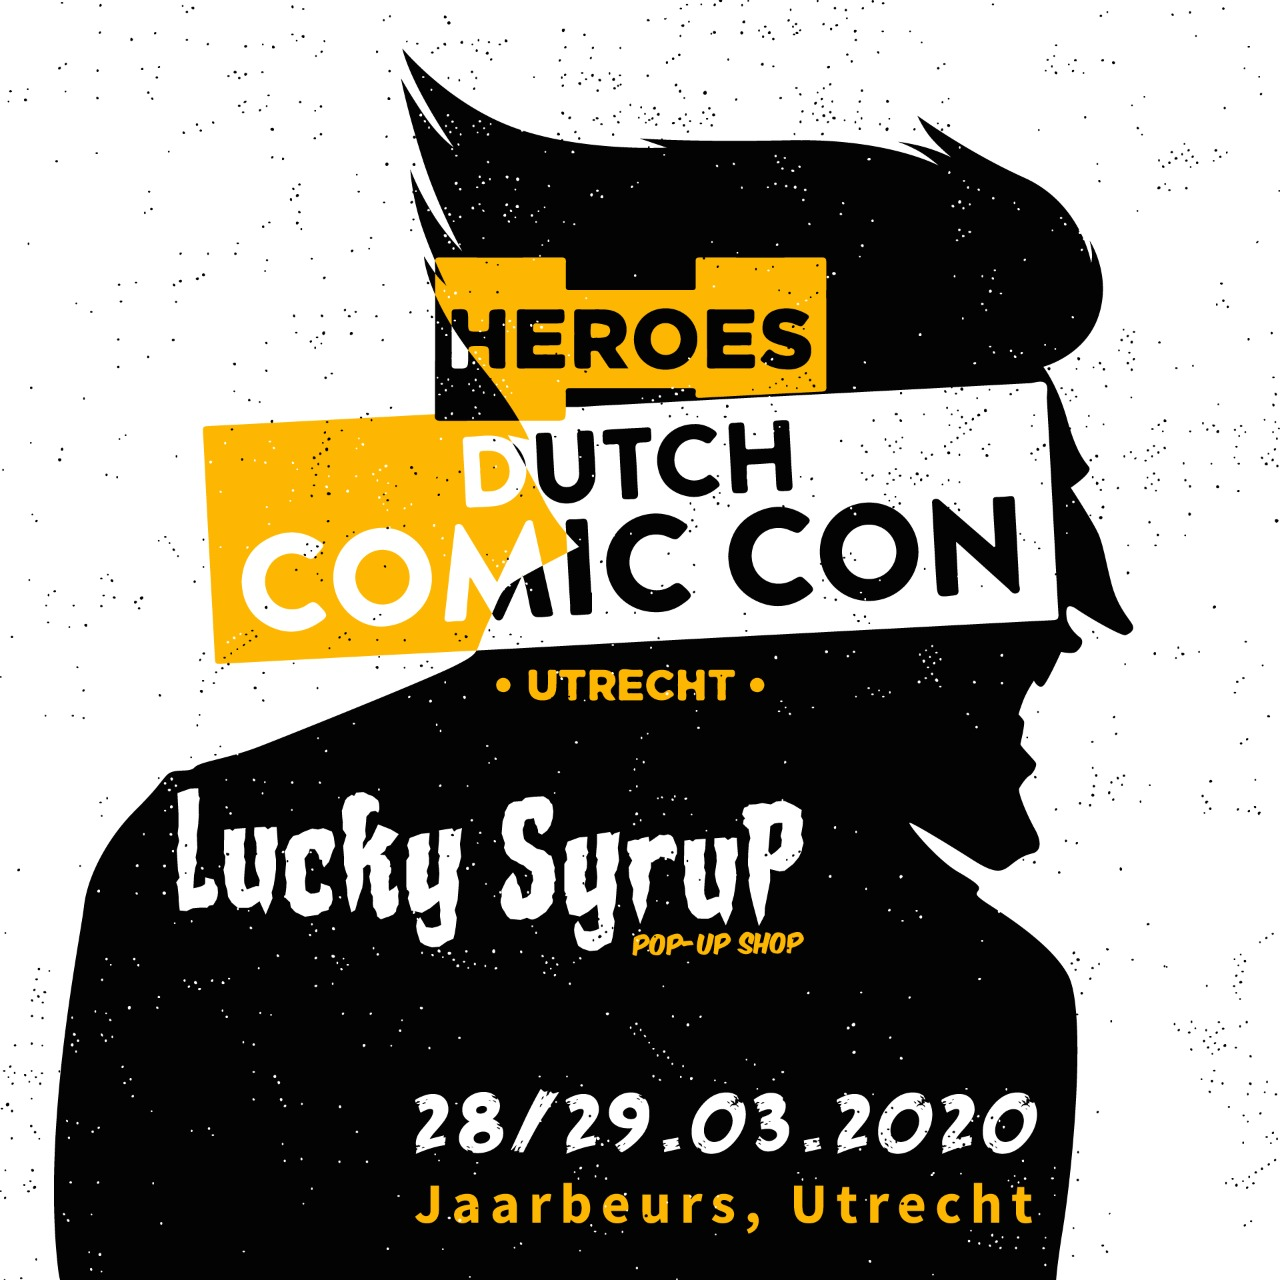 Lucky Syrup Top Quality T-shirts from Berlin | Blog | Upcoming events 2020